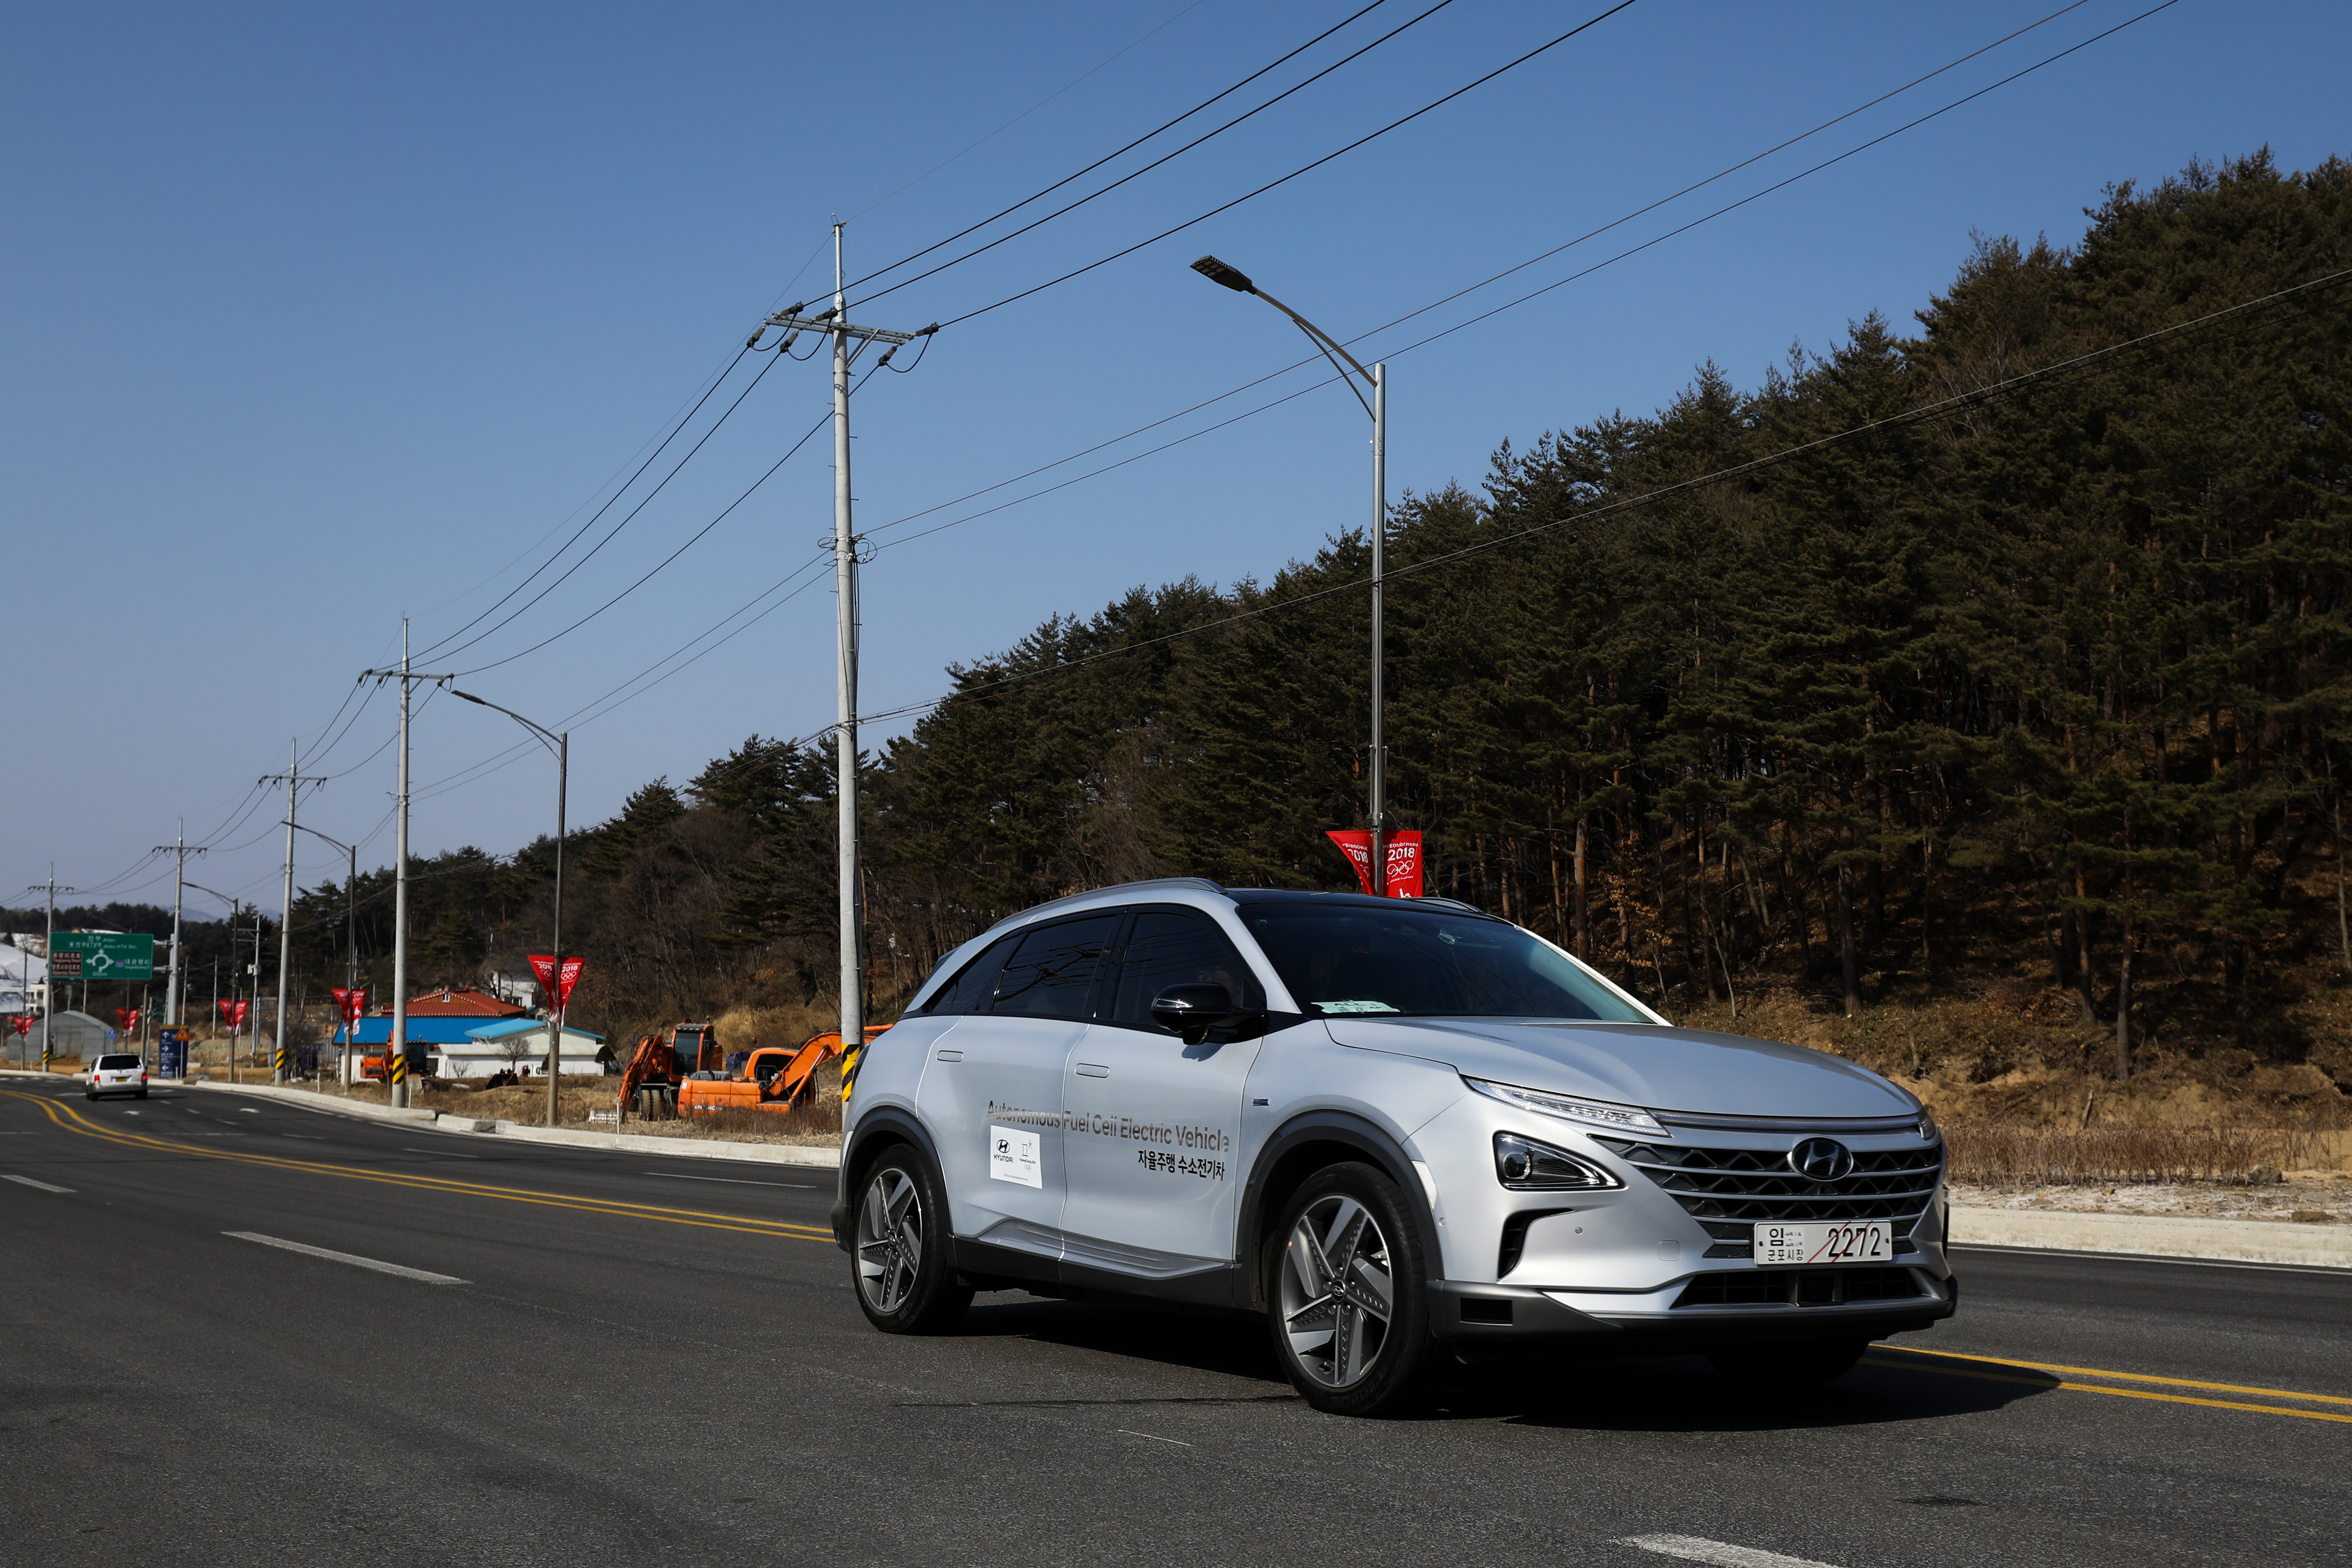 A Hyundai Nexo autonomous fuel cell electric vehicle travels along a road during a test drive in Pyeongchang, South Korea.